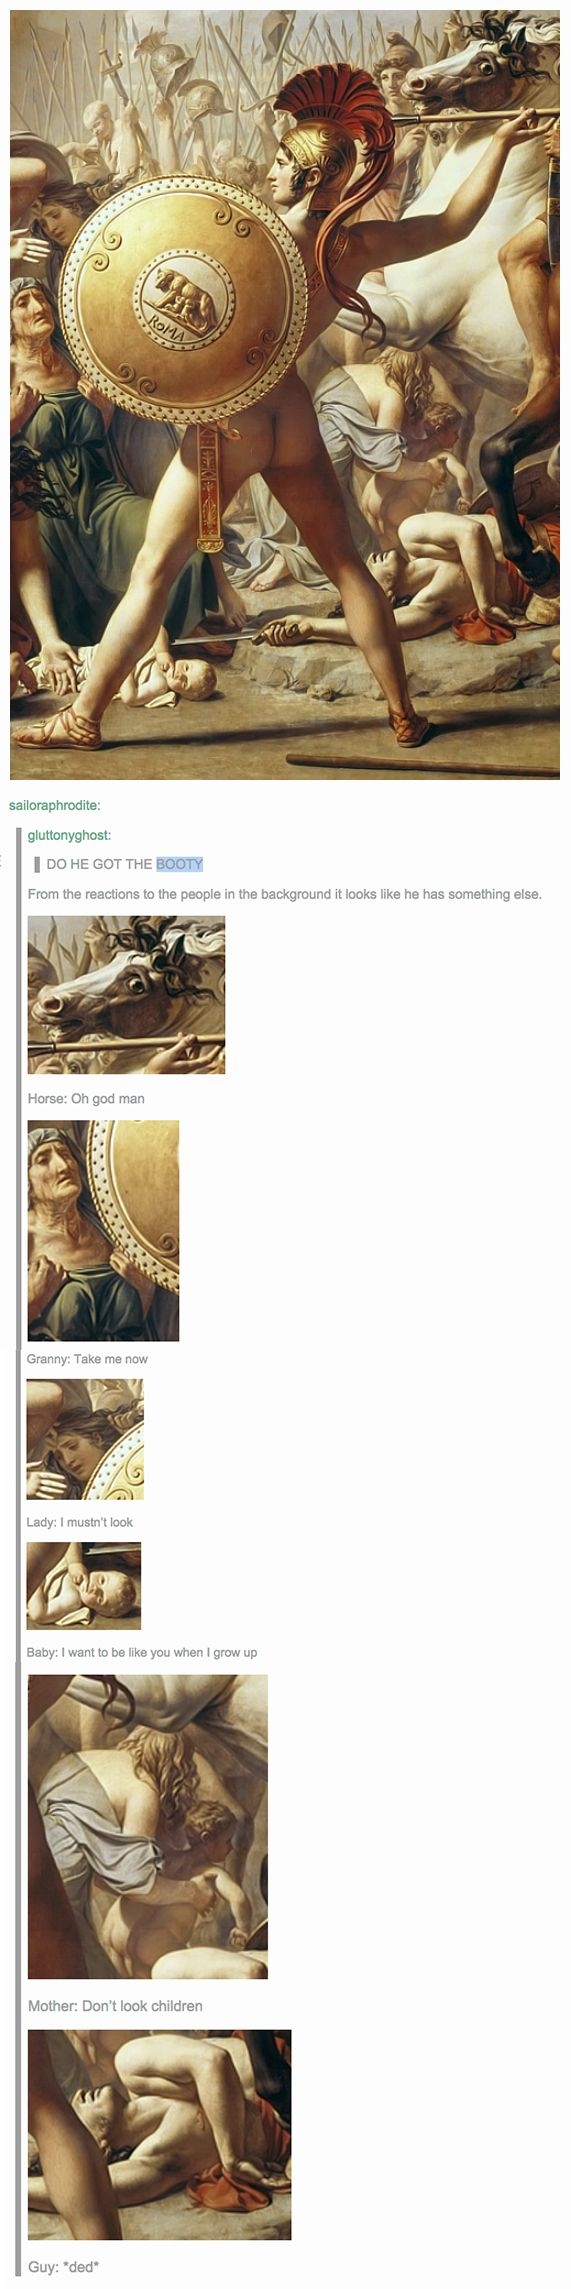 27 Times Tumblr Used Art History Perfectly To Make A Point  *uncontrollable laughter*